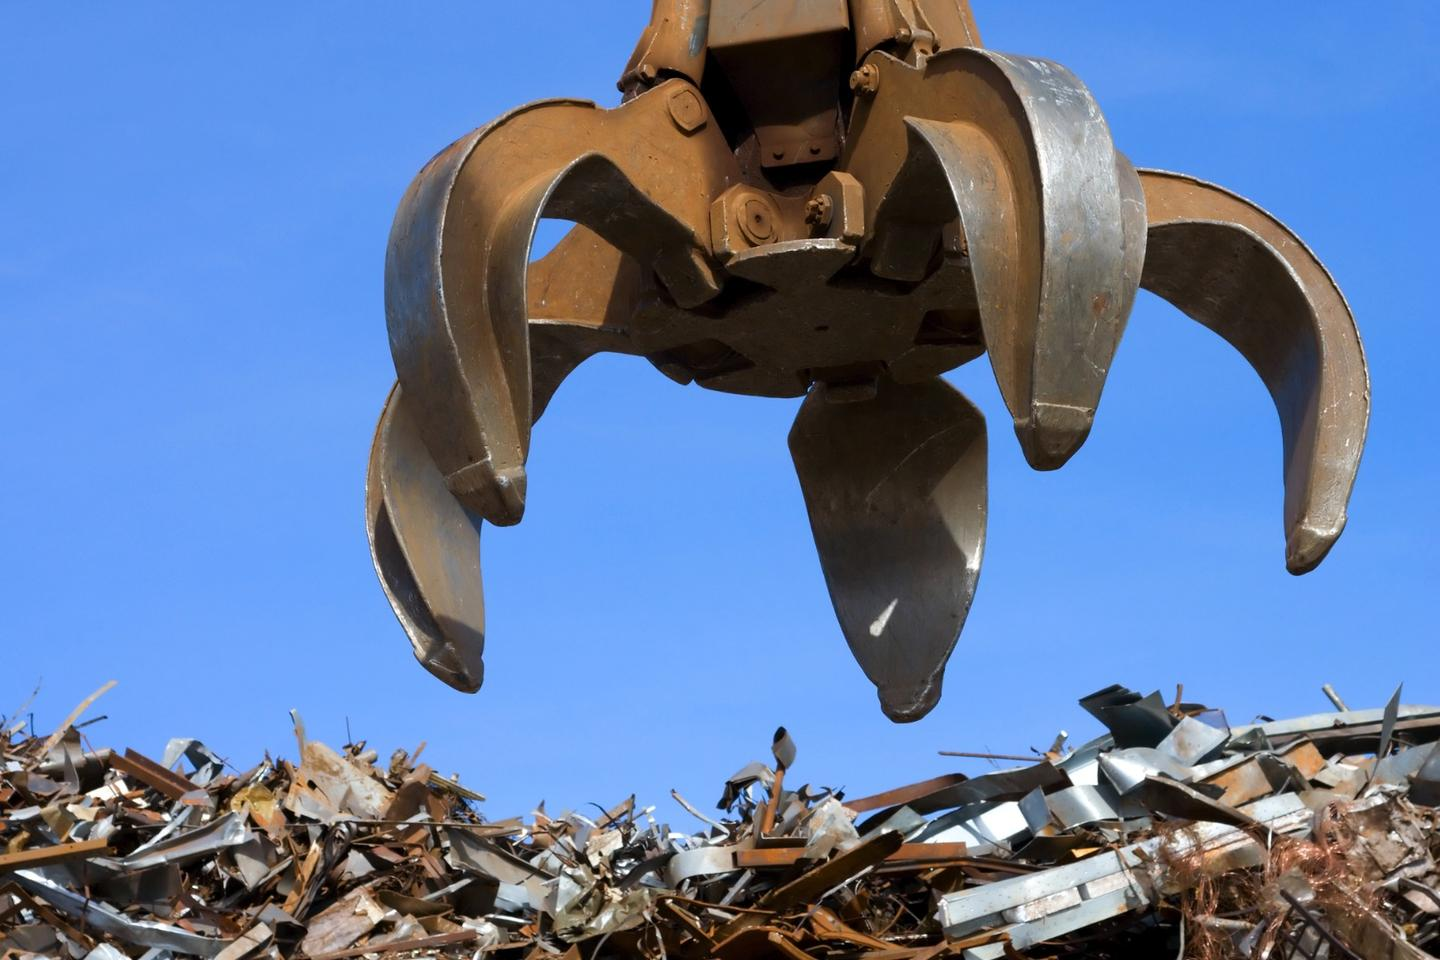 Metal from the trash heap may one daywind up inside yoursmartphone instead of the other way around